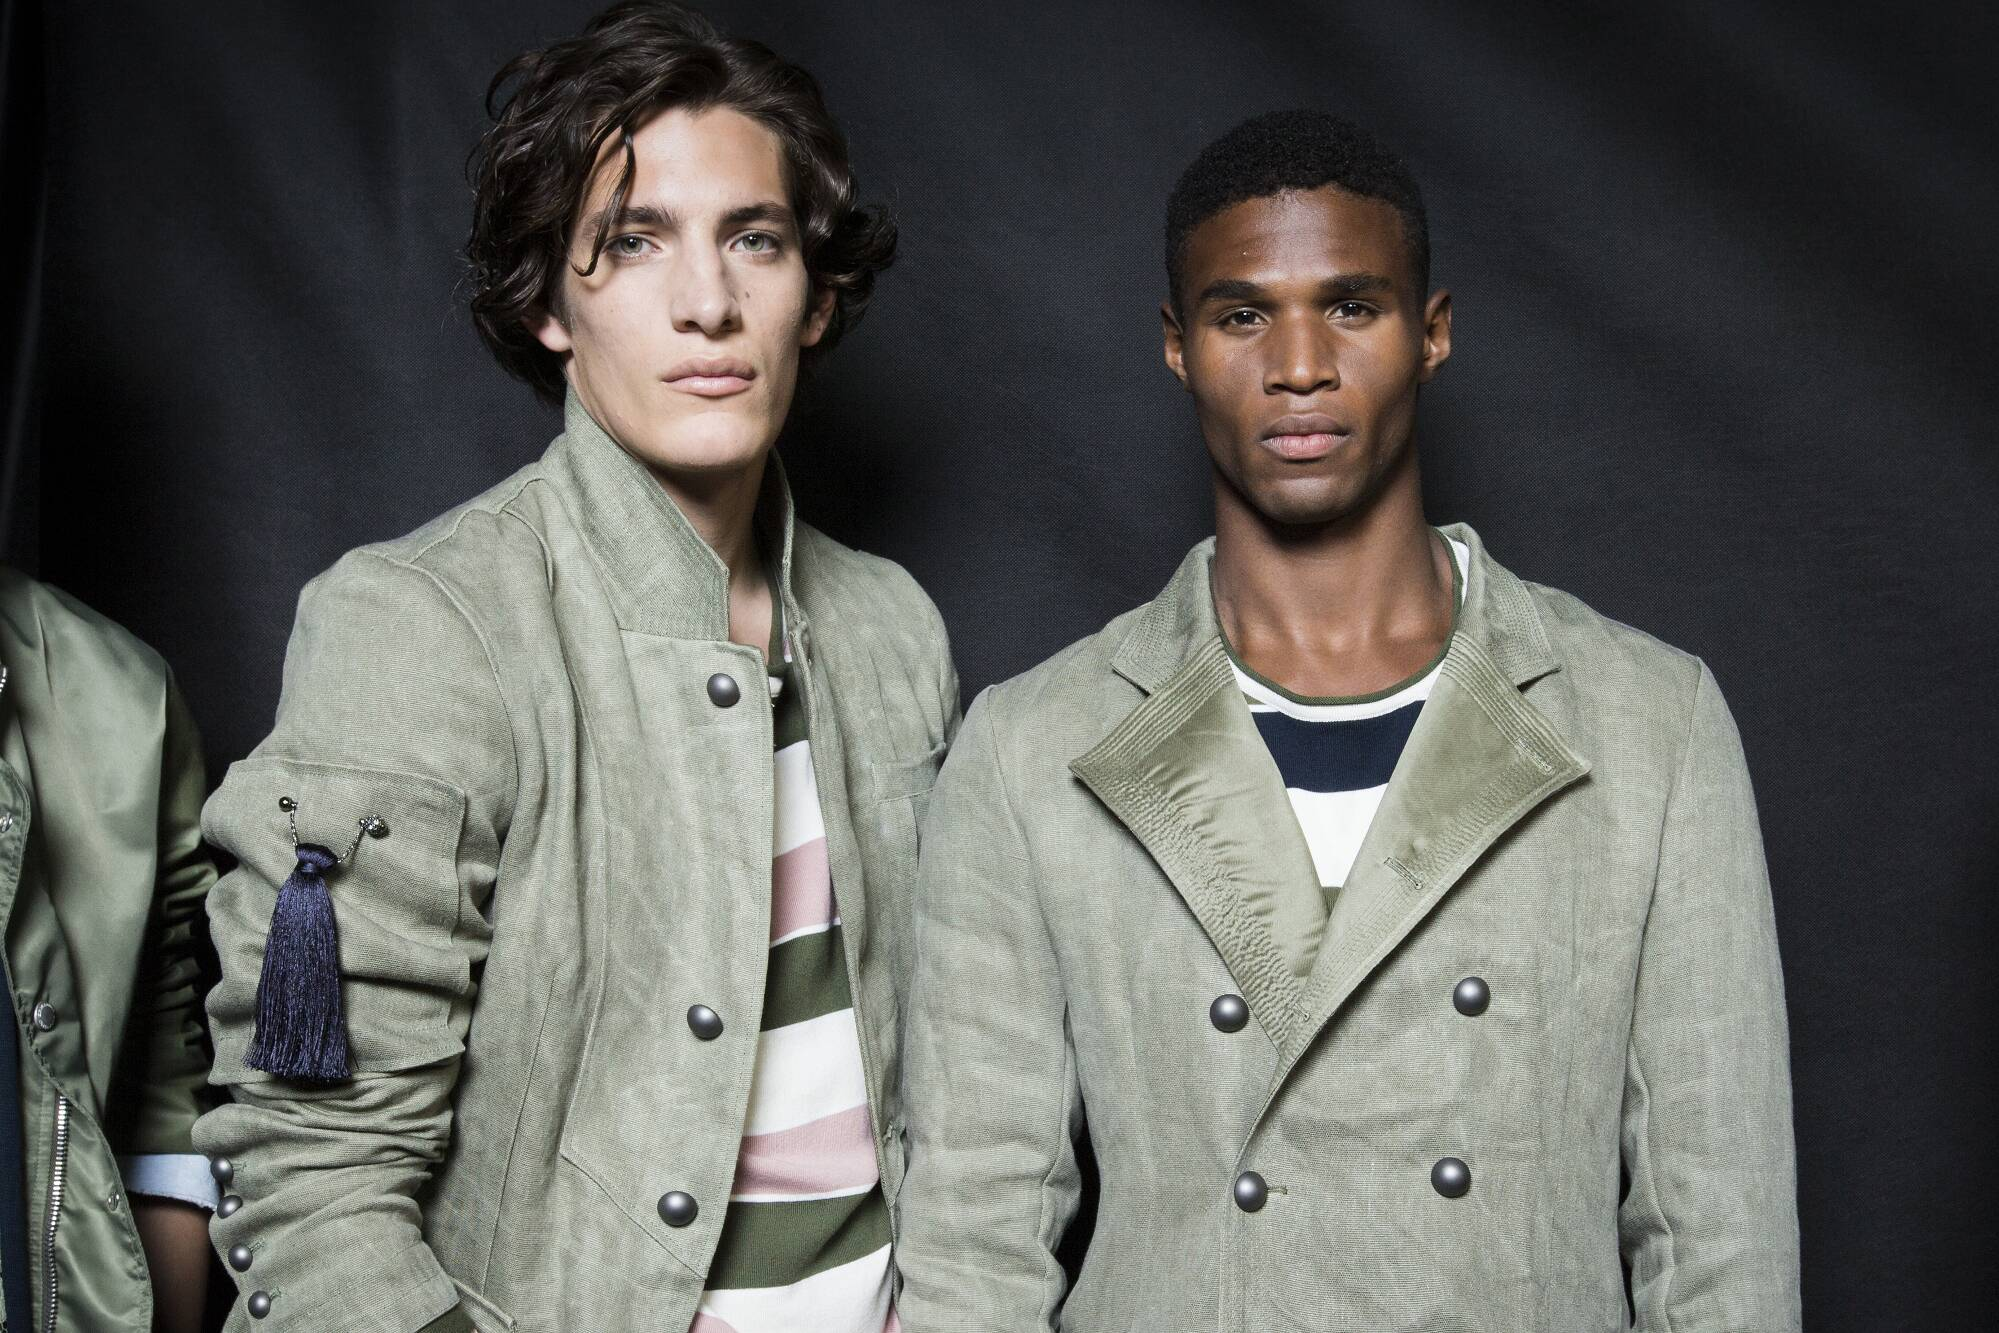 Ermanno Scervino Backstage Fashion Models Menswear